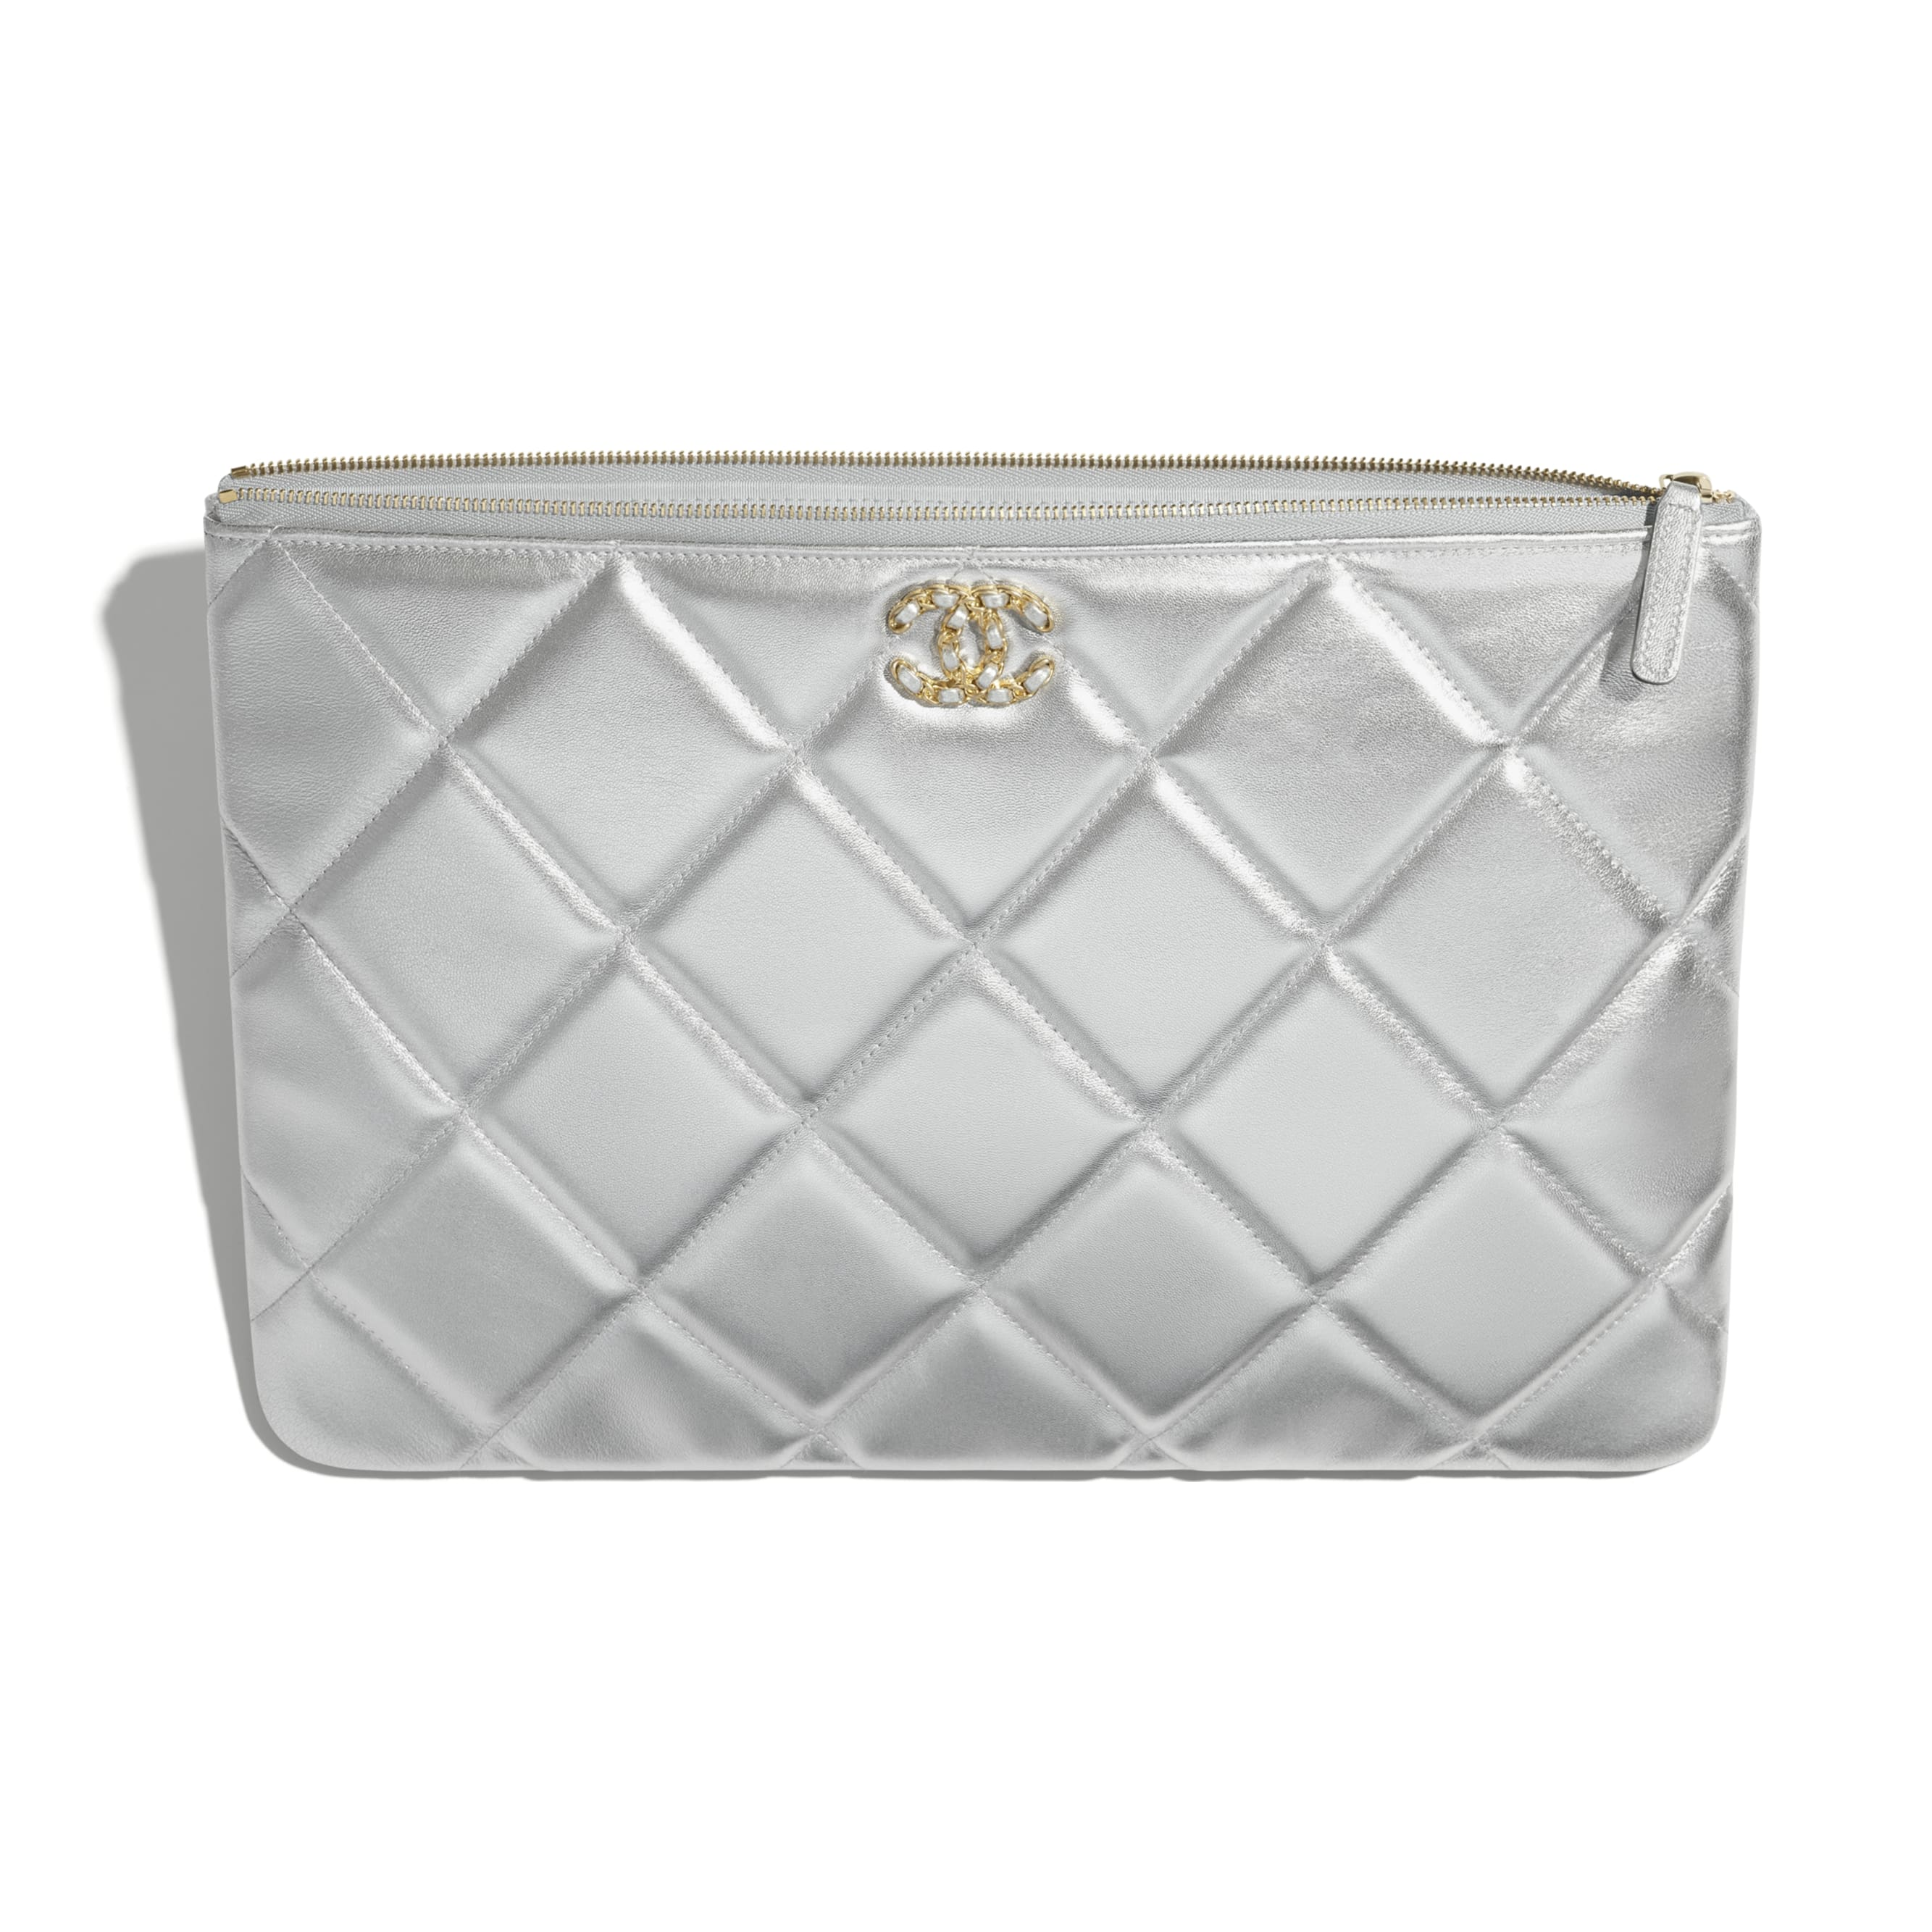 CHANEL 19 Large Pouch - Silver - Metallic Lambskin, Gold-Tone, Silver-Tone & Ruthenium-Finish Metal - CHANEL - Alternative view - see standard sized version